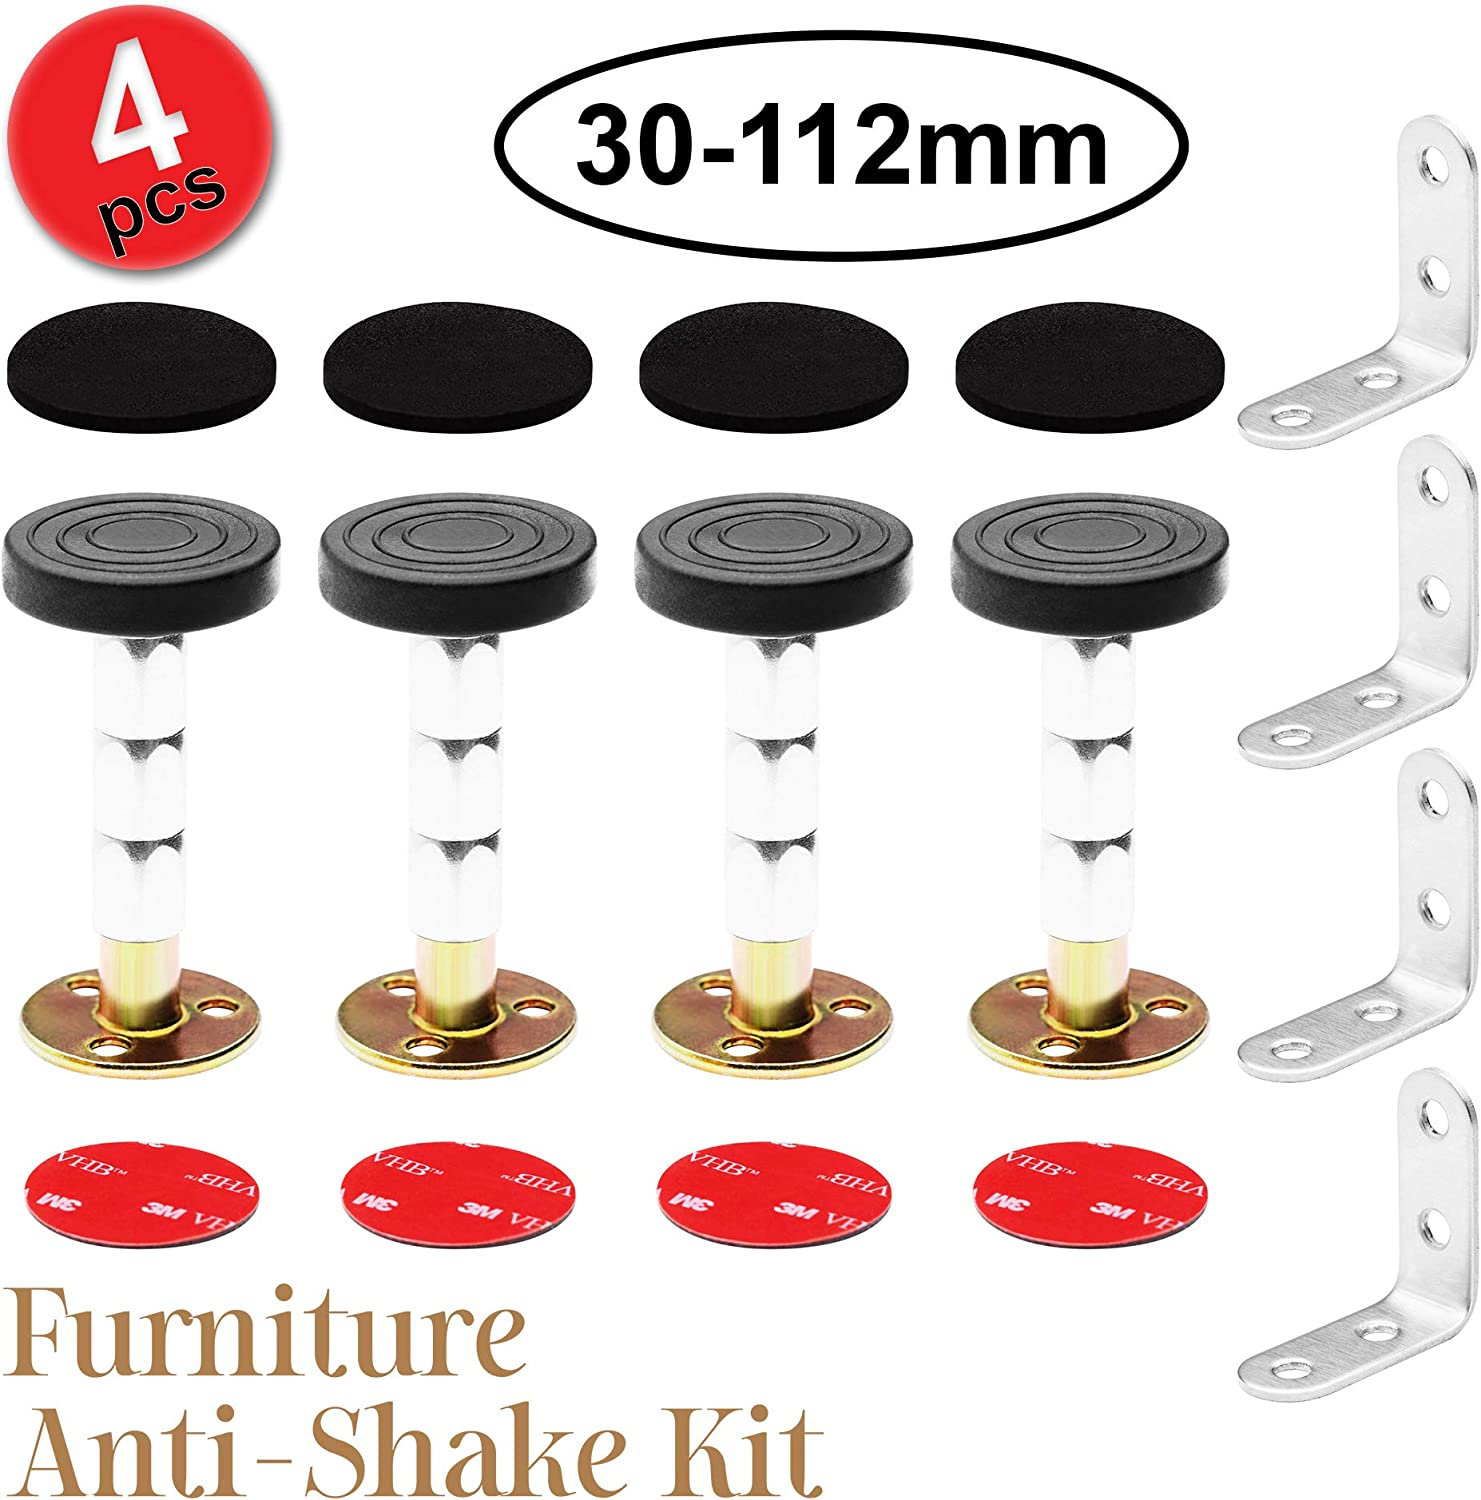 Headboard Stoppers Furniture Protectors Set-4(30-112mm) Adjustable Threaded Anti-Shake Tool 4 Self-Adhesive EVA Pads 4 Double Sided Self-Adhesive Dots 4 Corner Braces Support for Wall Furniture Bed